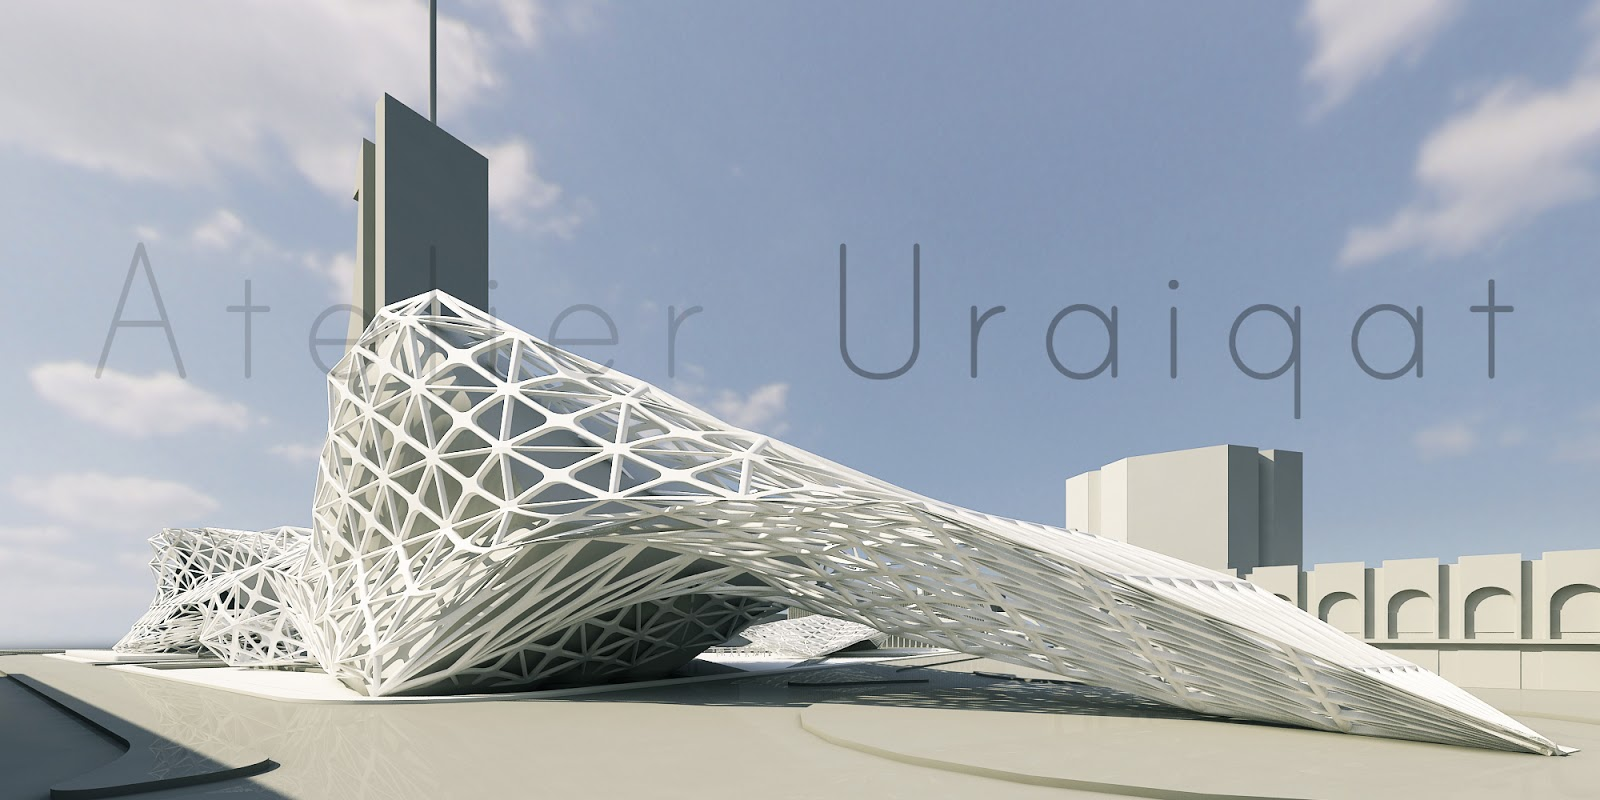 Atelier Uraiqat Cyborg Architects The Effect Of Digital